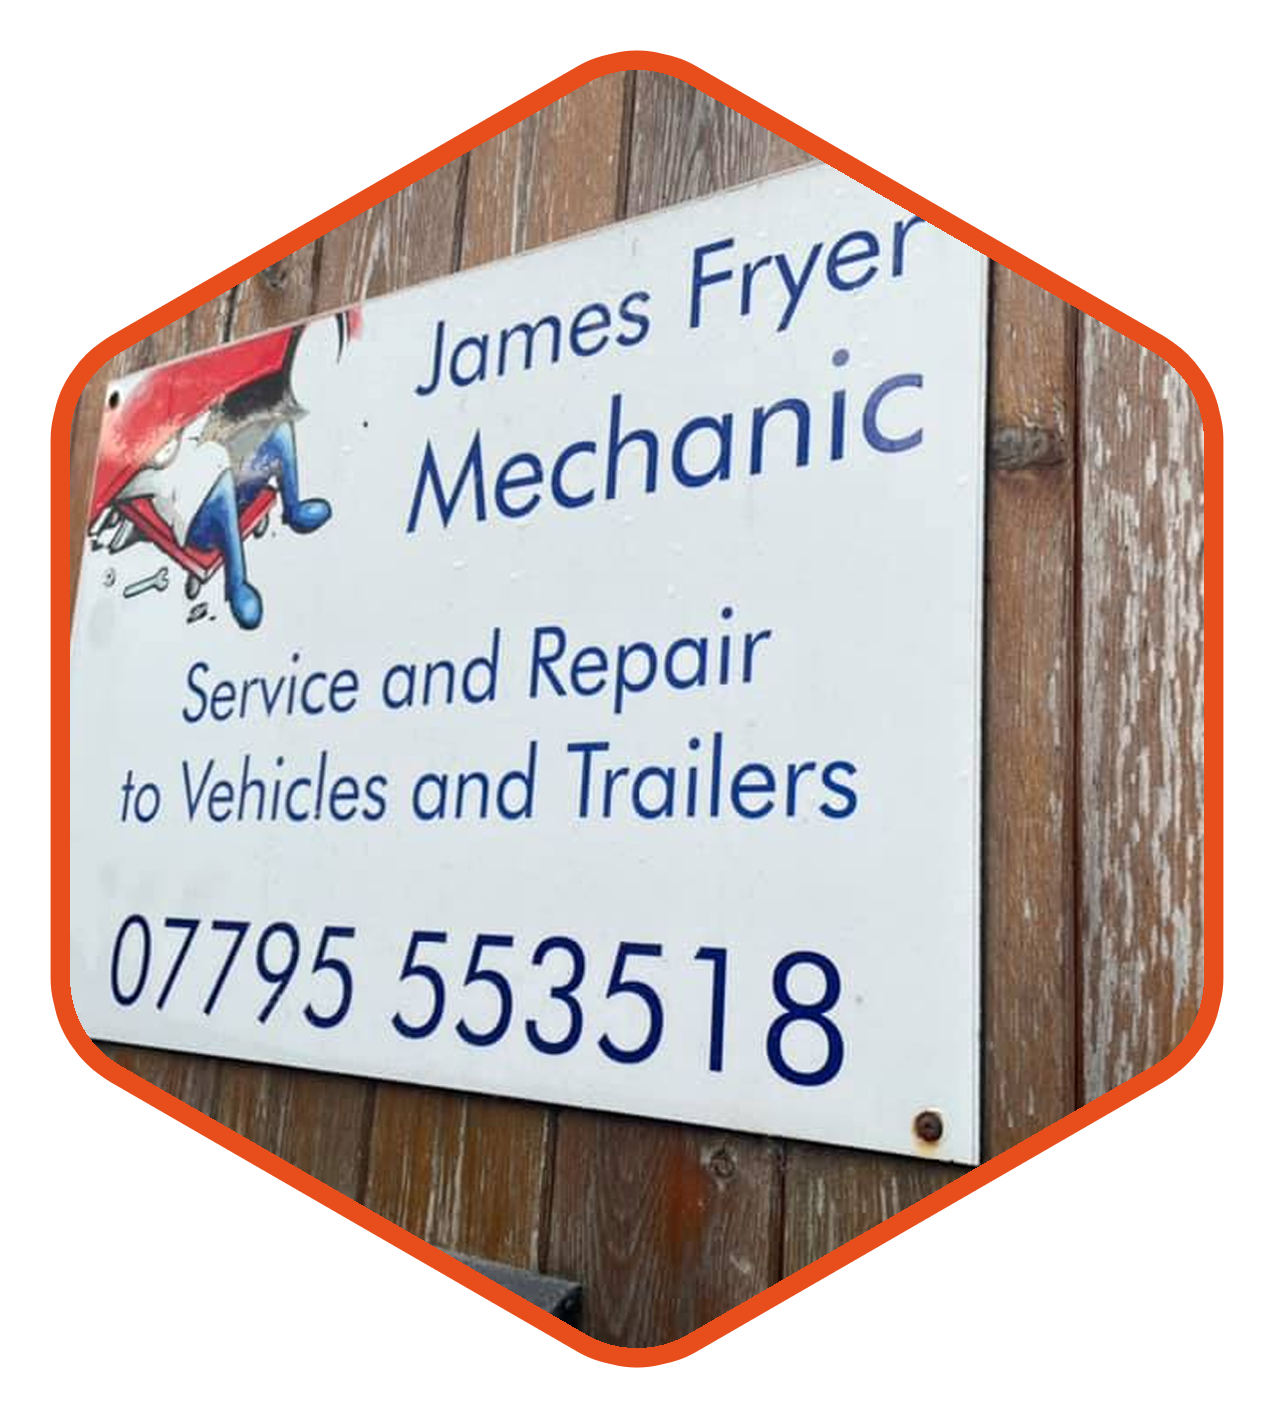 James Fryer Mechanic